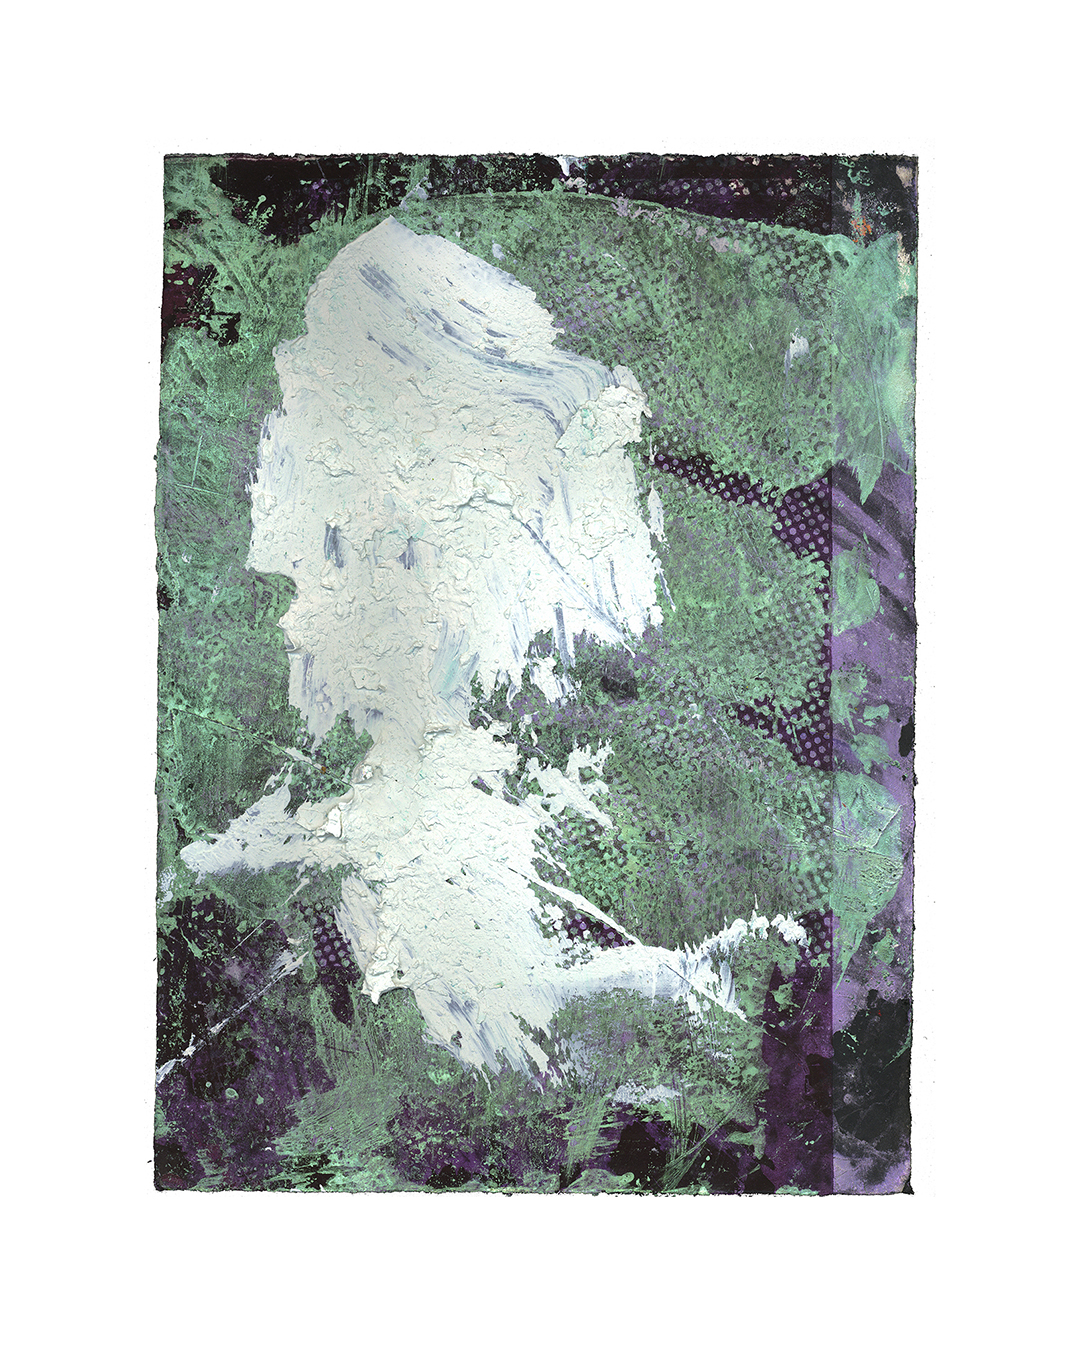 Piet Dieleman, untitled, 2020, painting, acrylic paint, pigment, laser woodprint on paper, 395 x 285 mm, €930